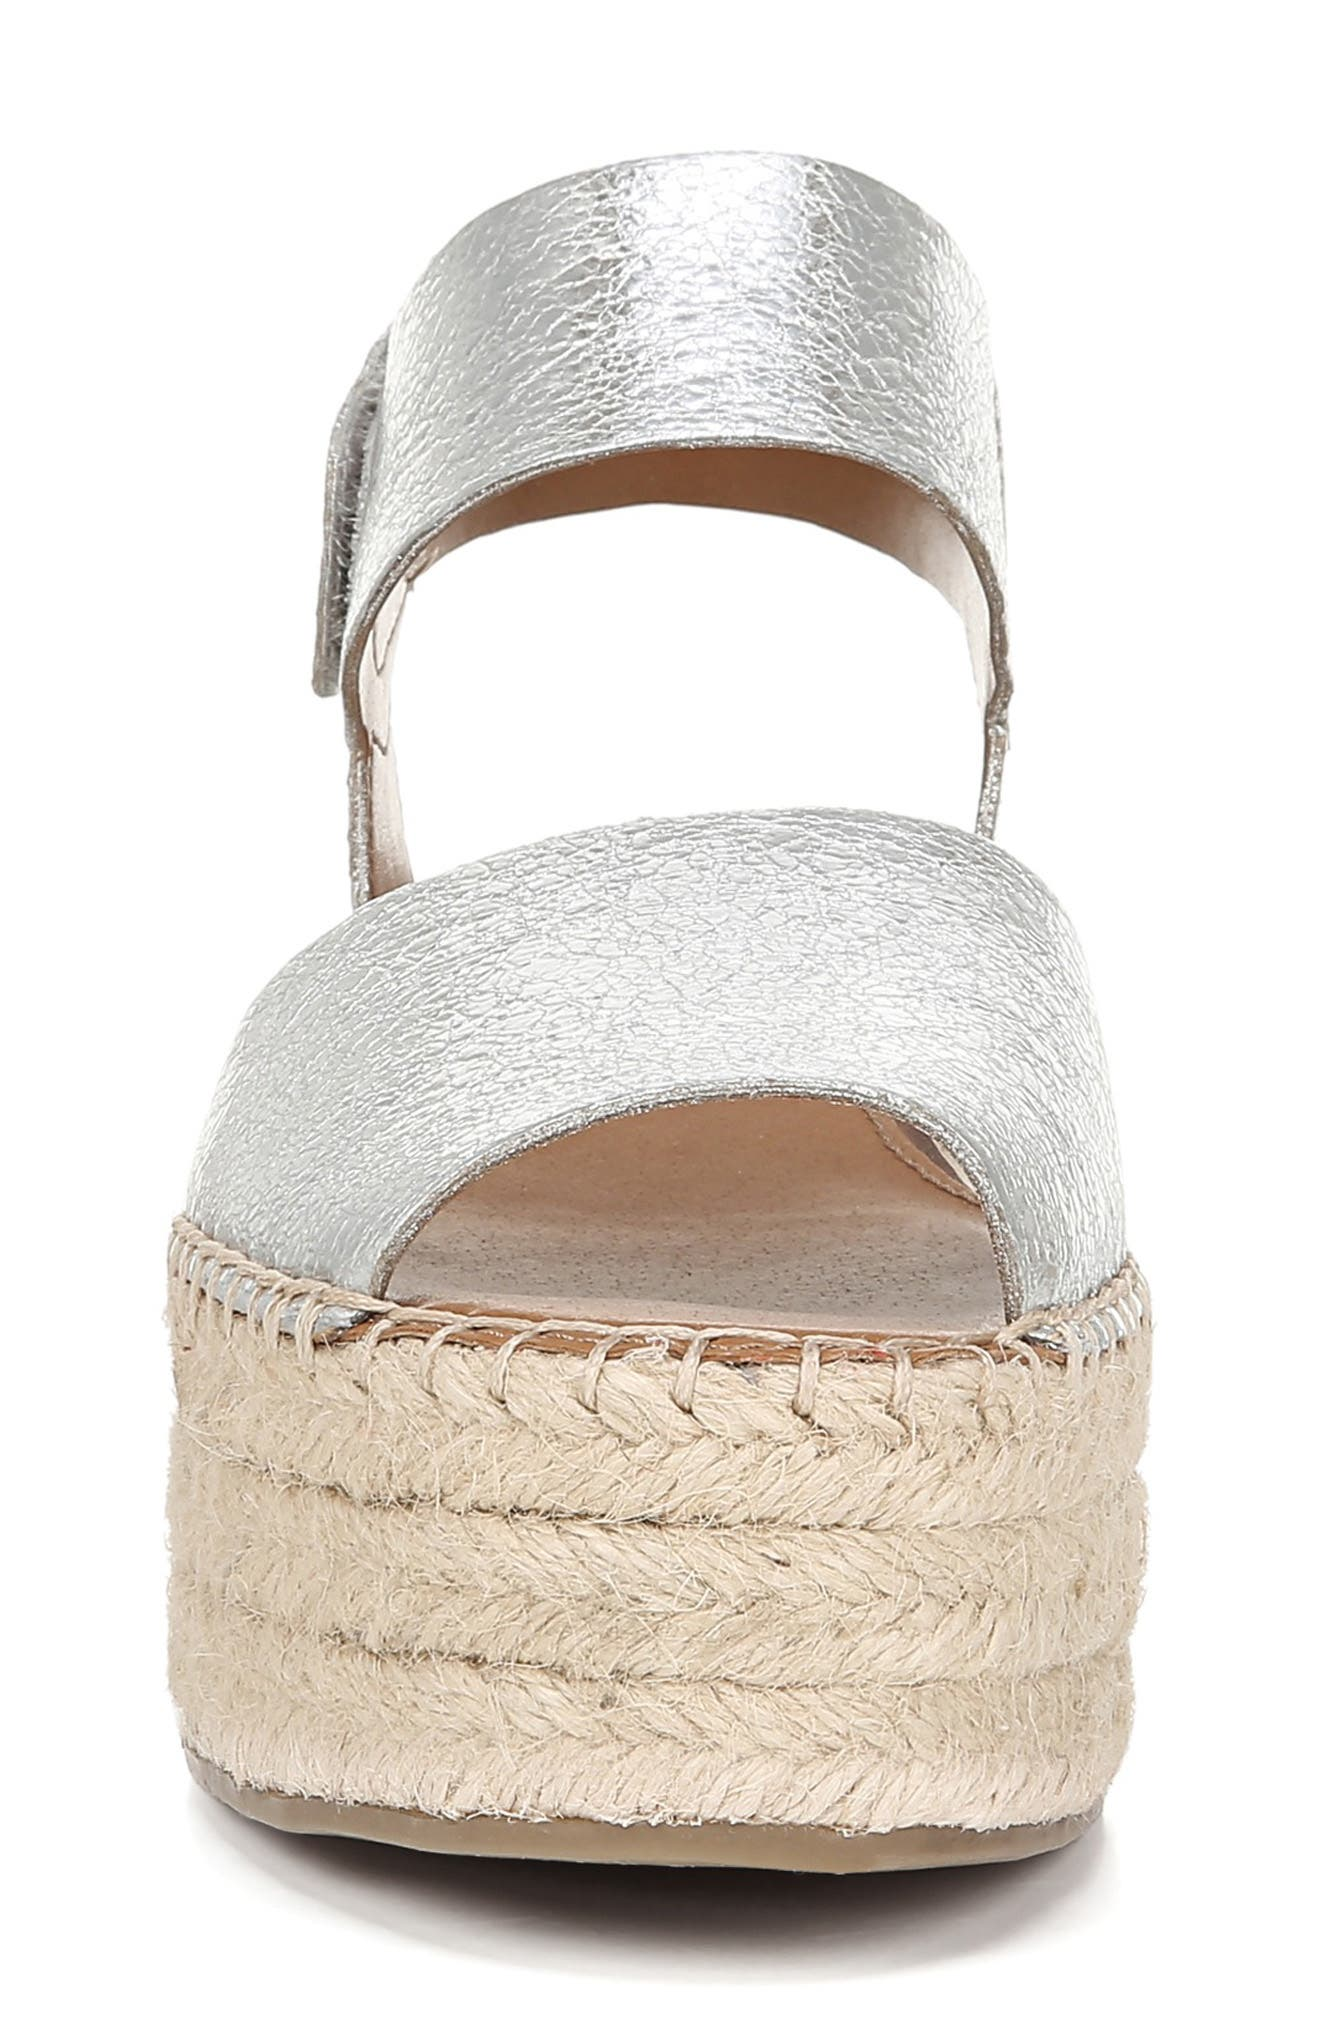 SARTO BY FRANCO SARTO, Leo Platform Espadrille Sandal, Alternate thumbnail 4, color, SILVER LEATHER